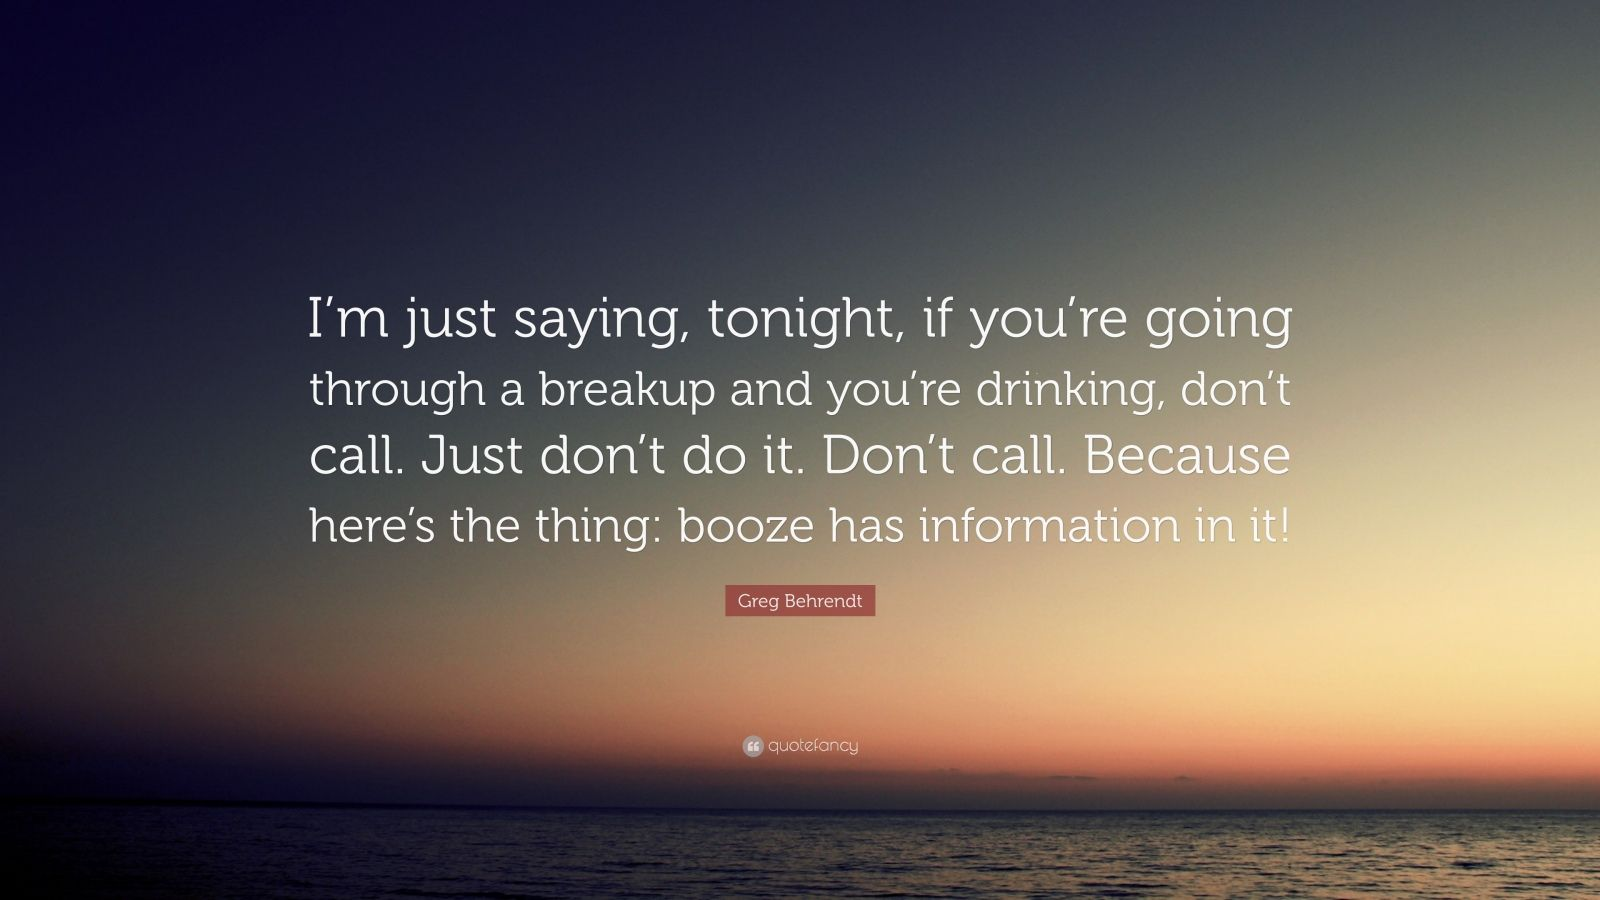 """Greg Behrendt Quote: """"I'm just saying, tonight, if you're going through a breakup and you're drinking, don't call. Just don't do it. Don't call. Because here's the thing: booze has information in it!"""""""